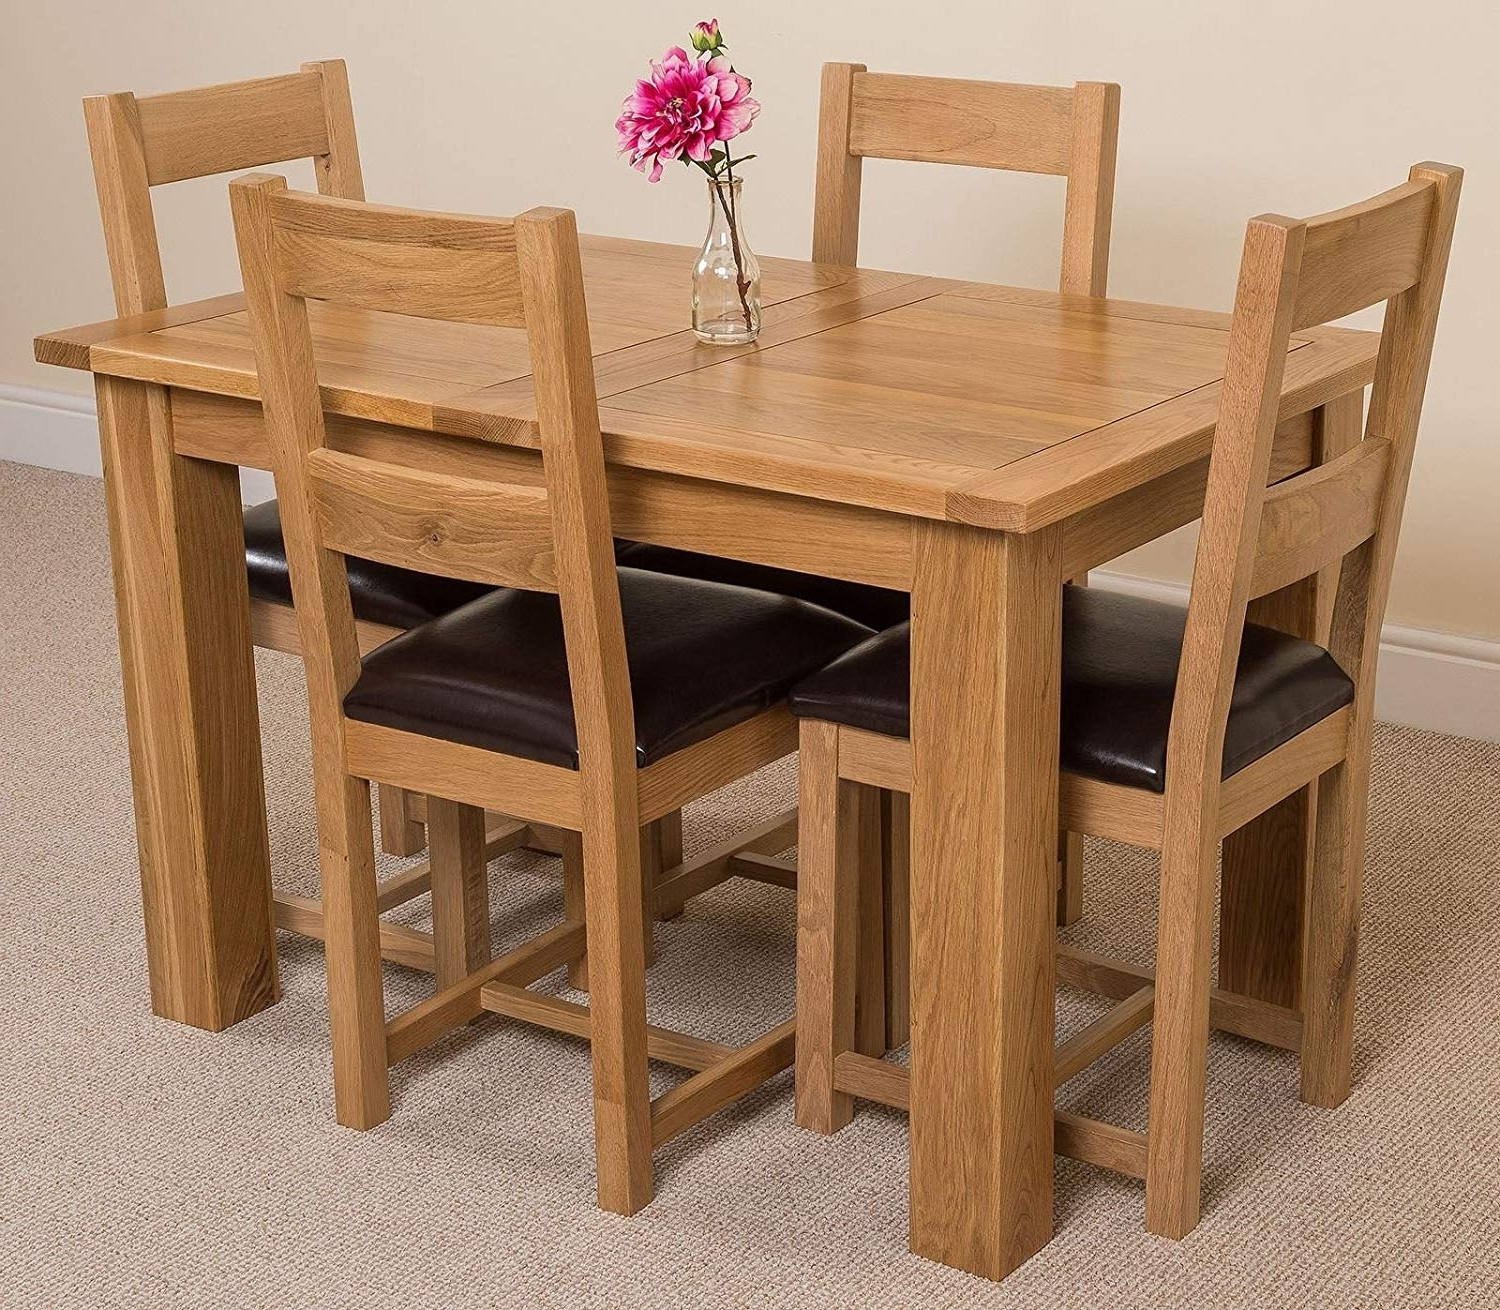 Small Oak Dining Tables With Regard To Famous Hampton Solid Oak (120 160 Cm) Extending Dining Table & 4 Lincoln (View 7 of 25)